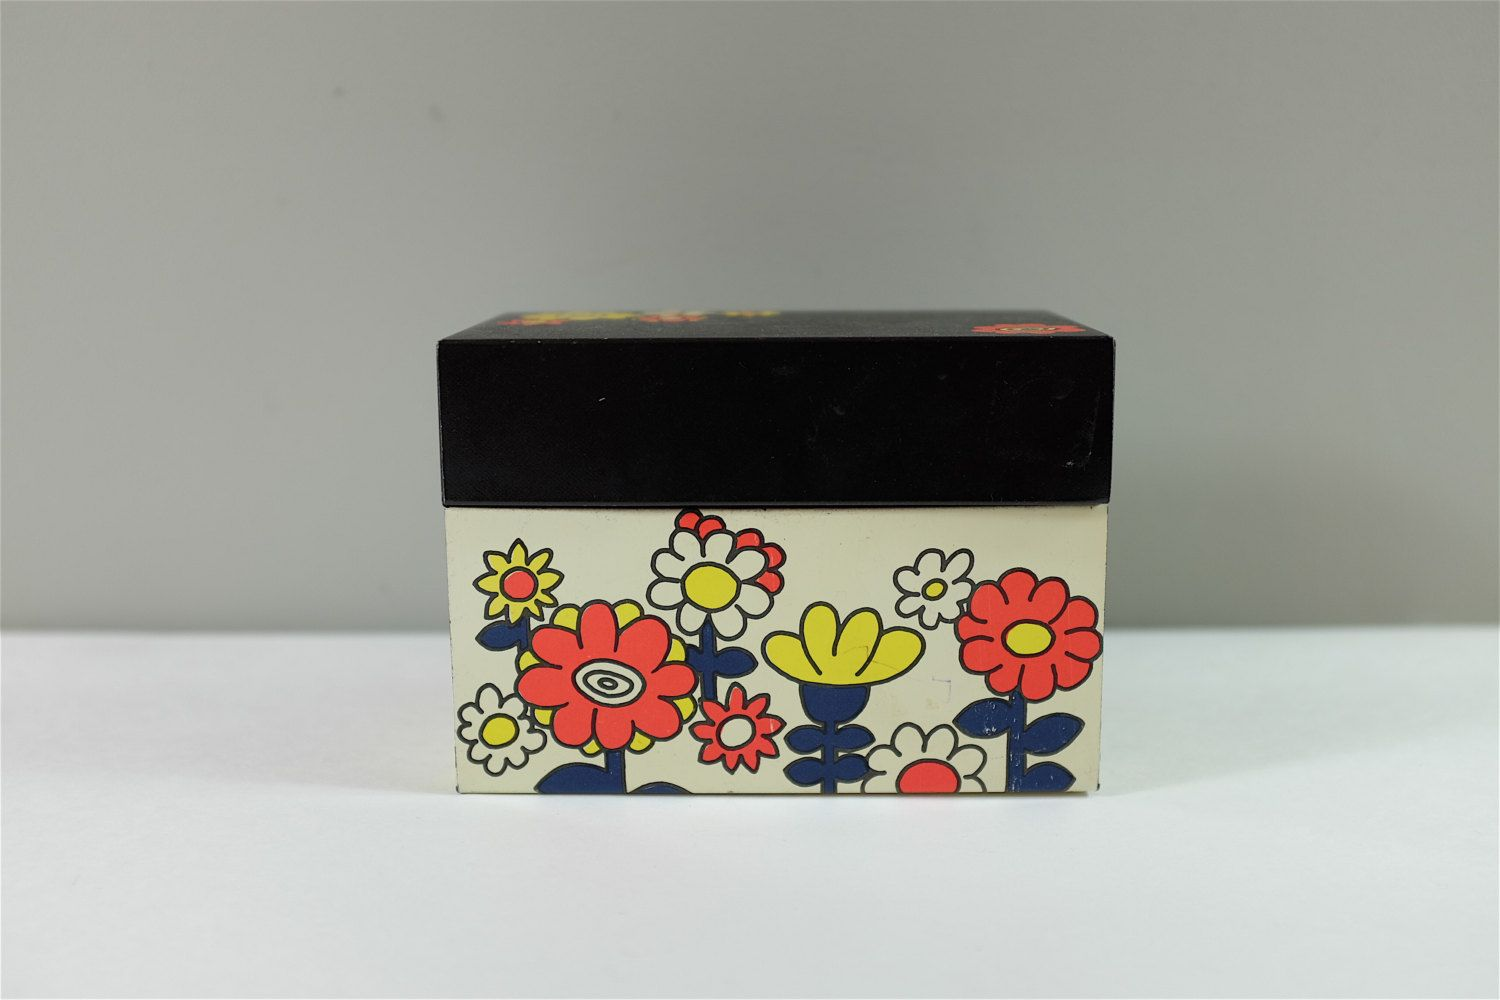 Boite Metal Cuisine Vintage Vintage Recipes Ohio Art Tin Box With Flowers Vintage Ohio Art